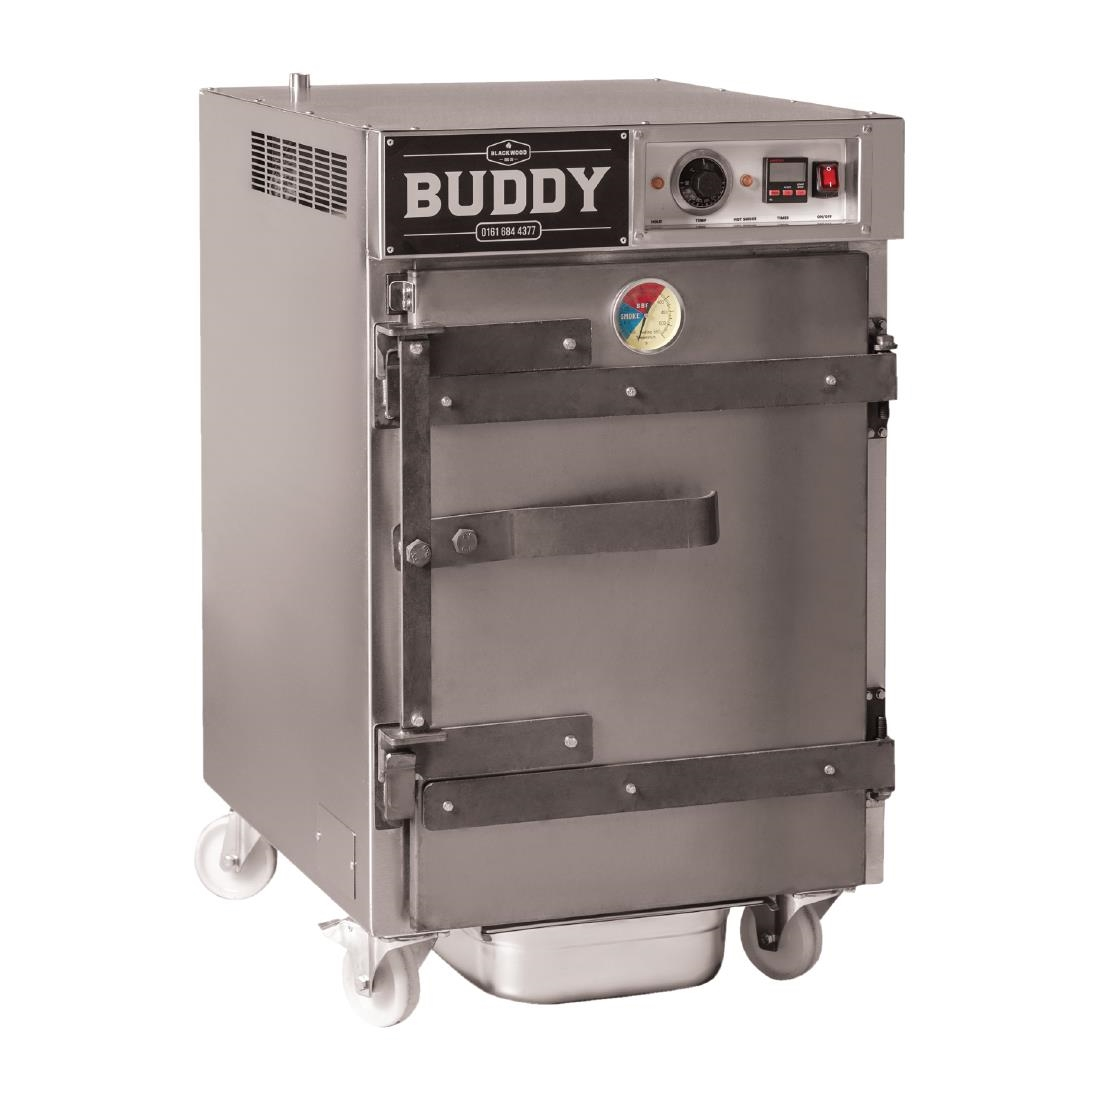 Blackwood Commercial Wood Smoker Buddy 24